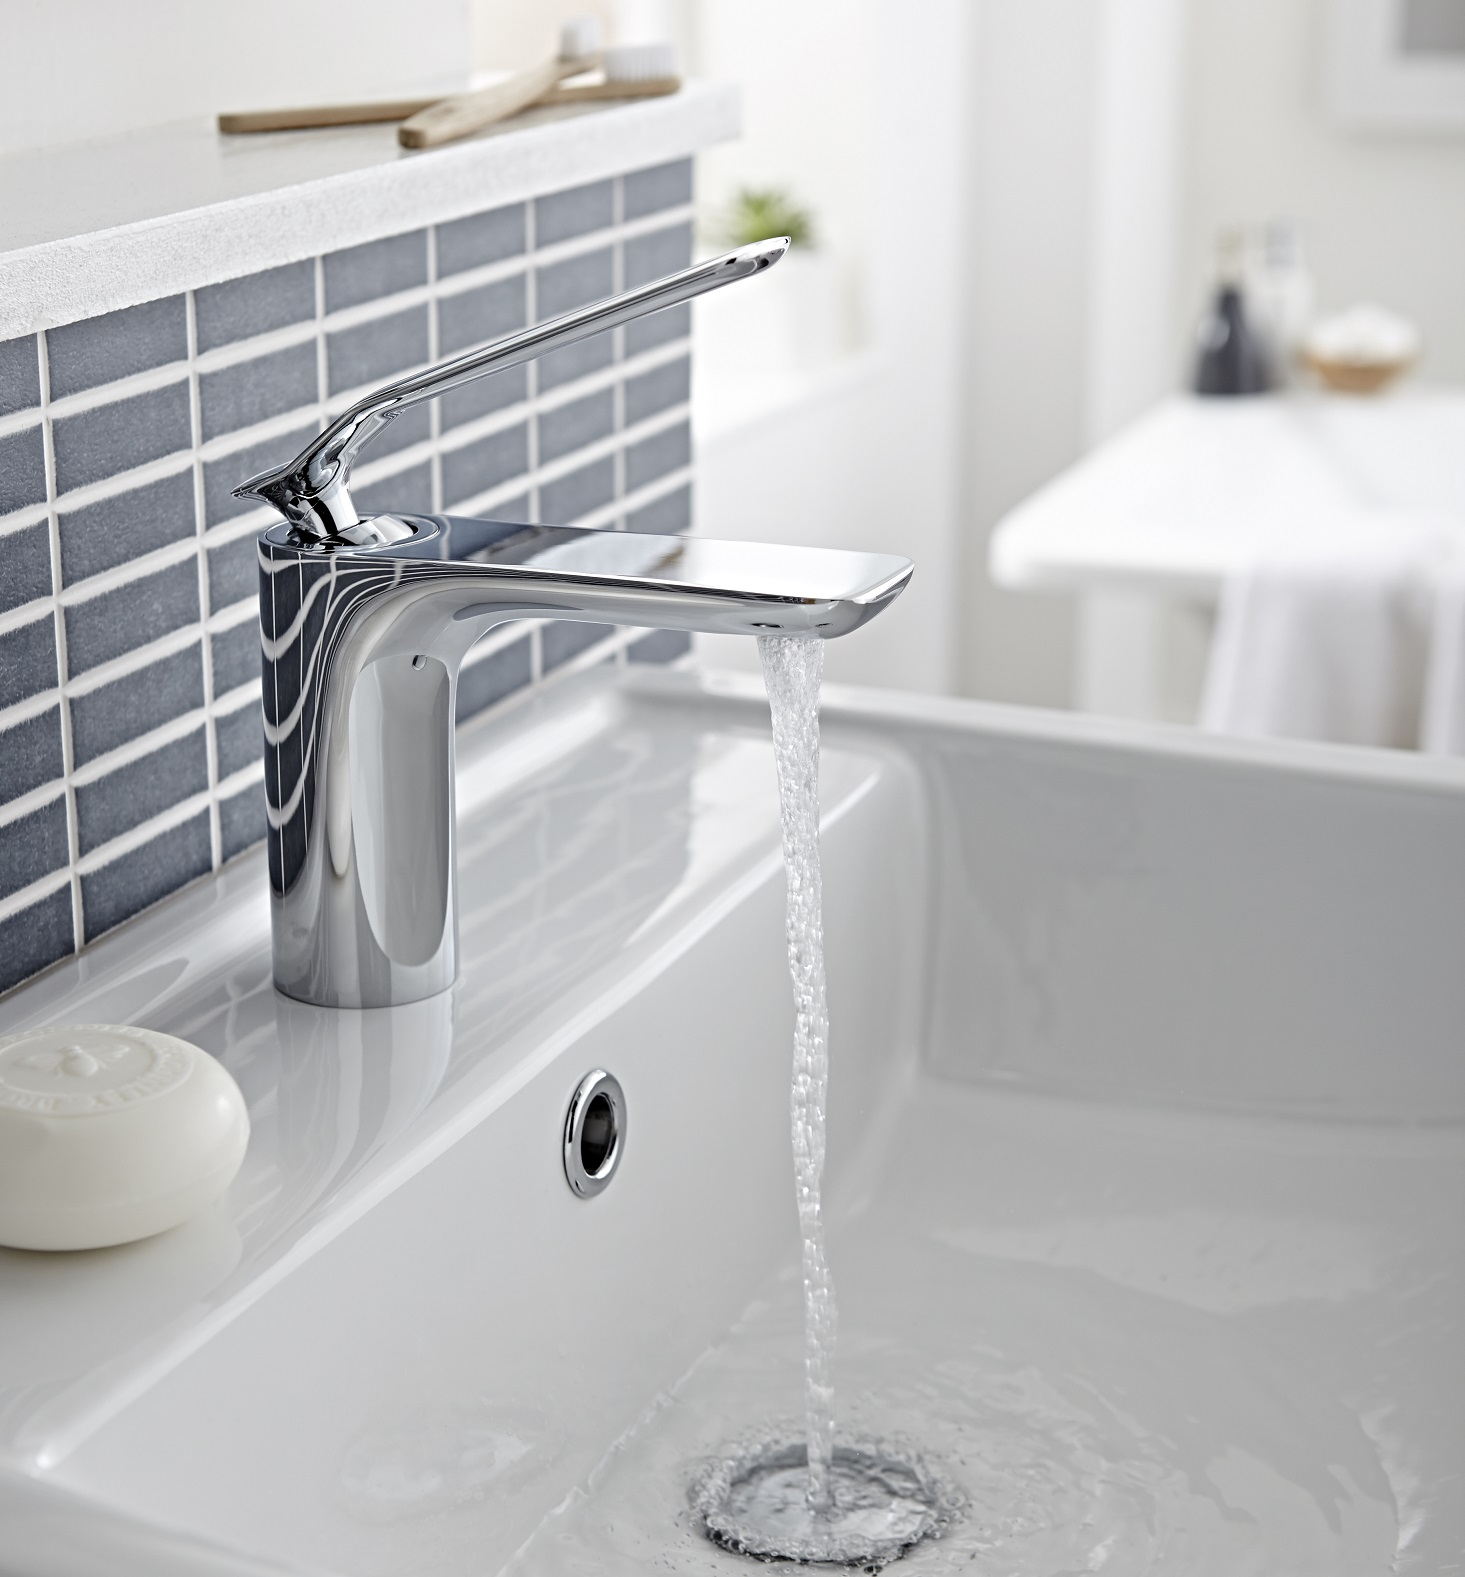 Basin Taps - How to Choose the Right Type - BigBathroomShop